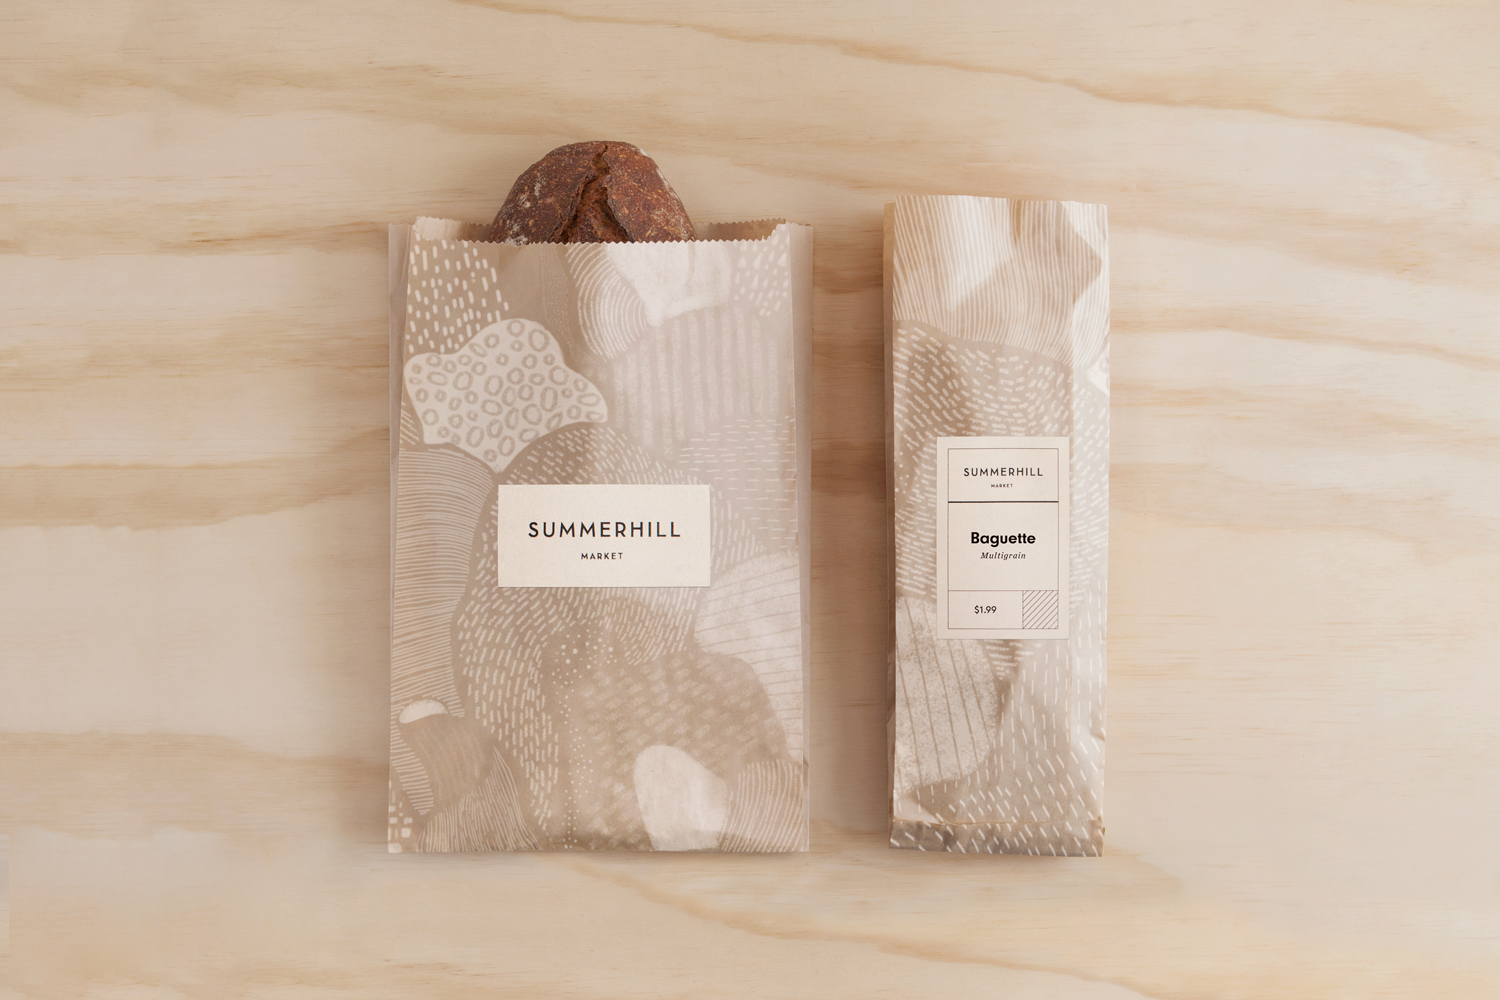 Branding and illustrated bread bags designed by Canadian studio Blok for Toronto based boutique grocery store Summerhill Market